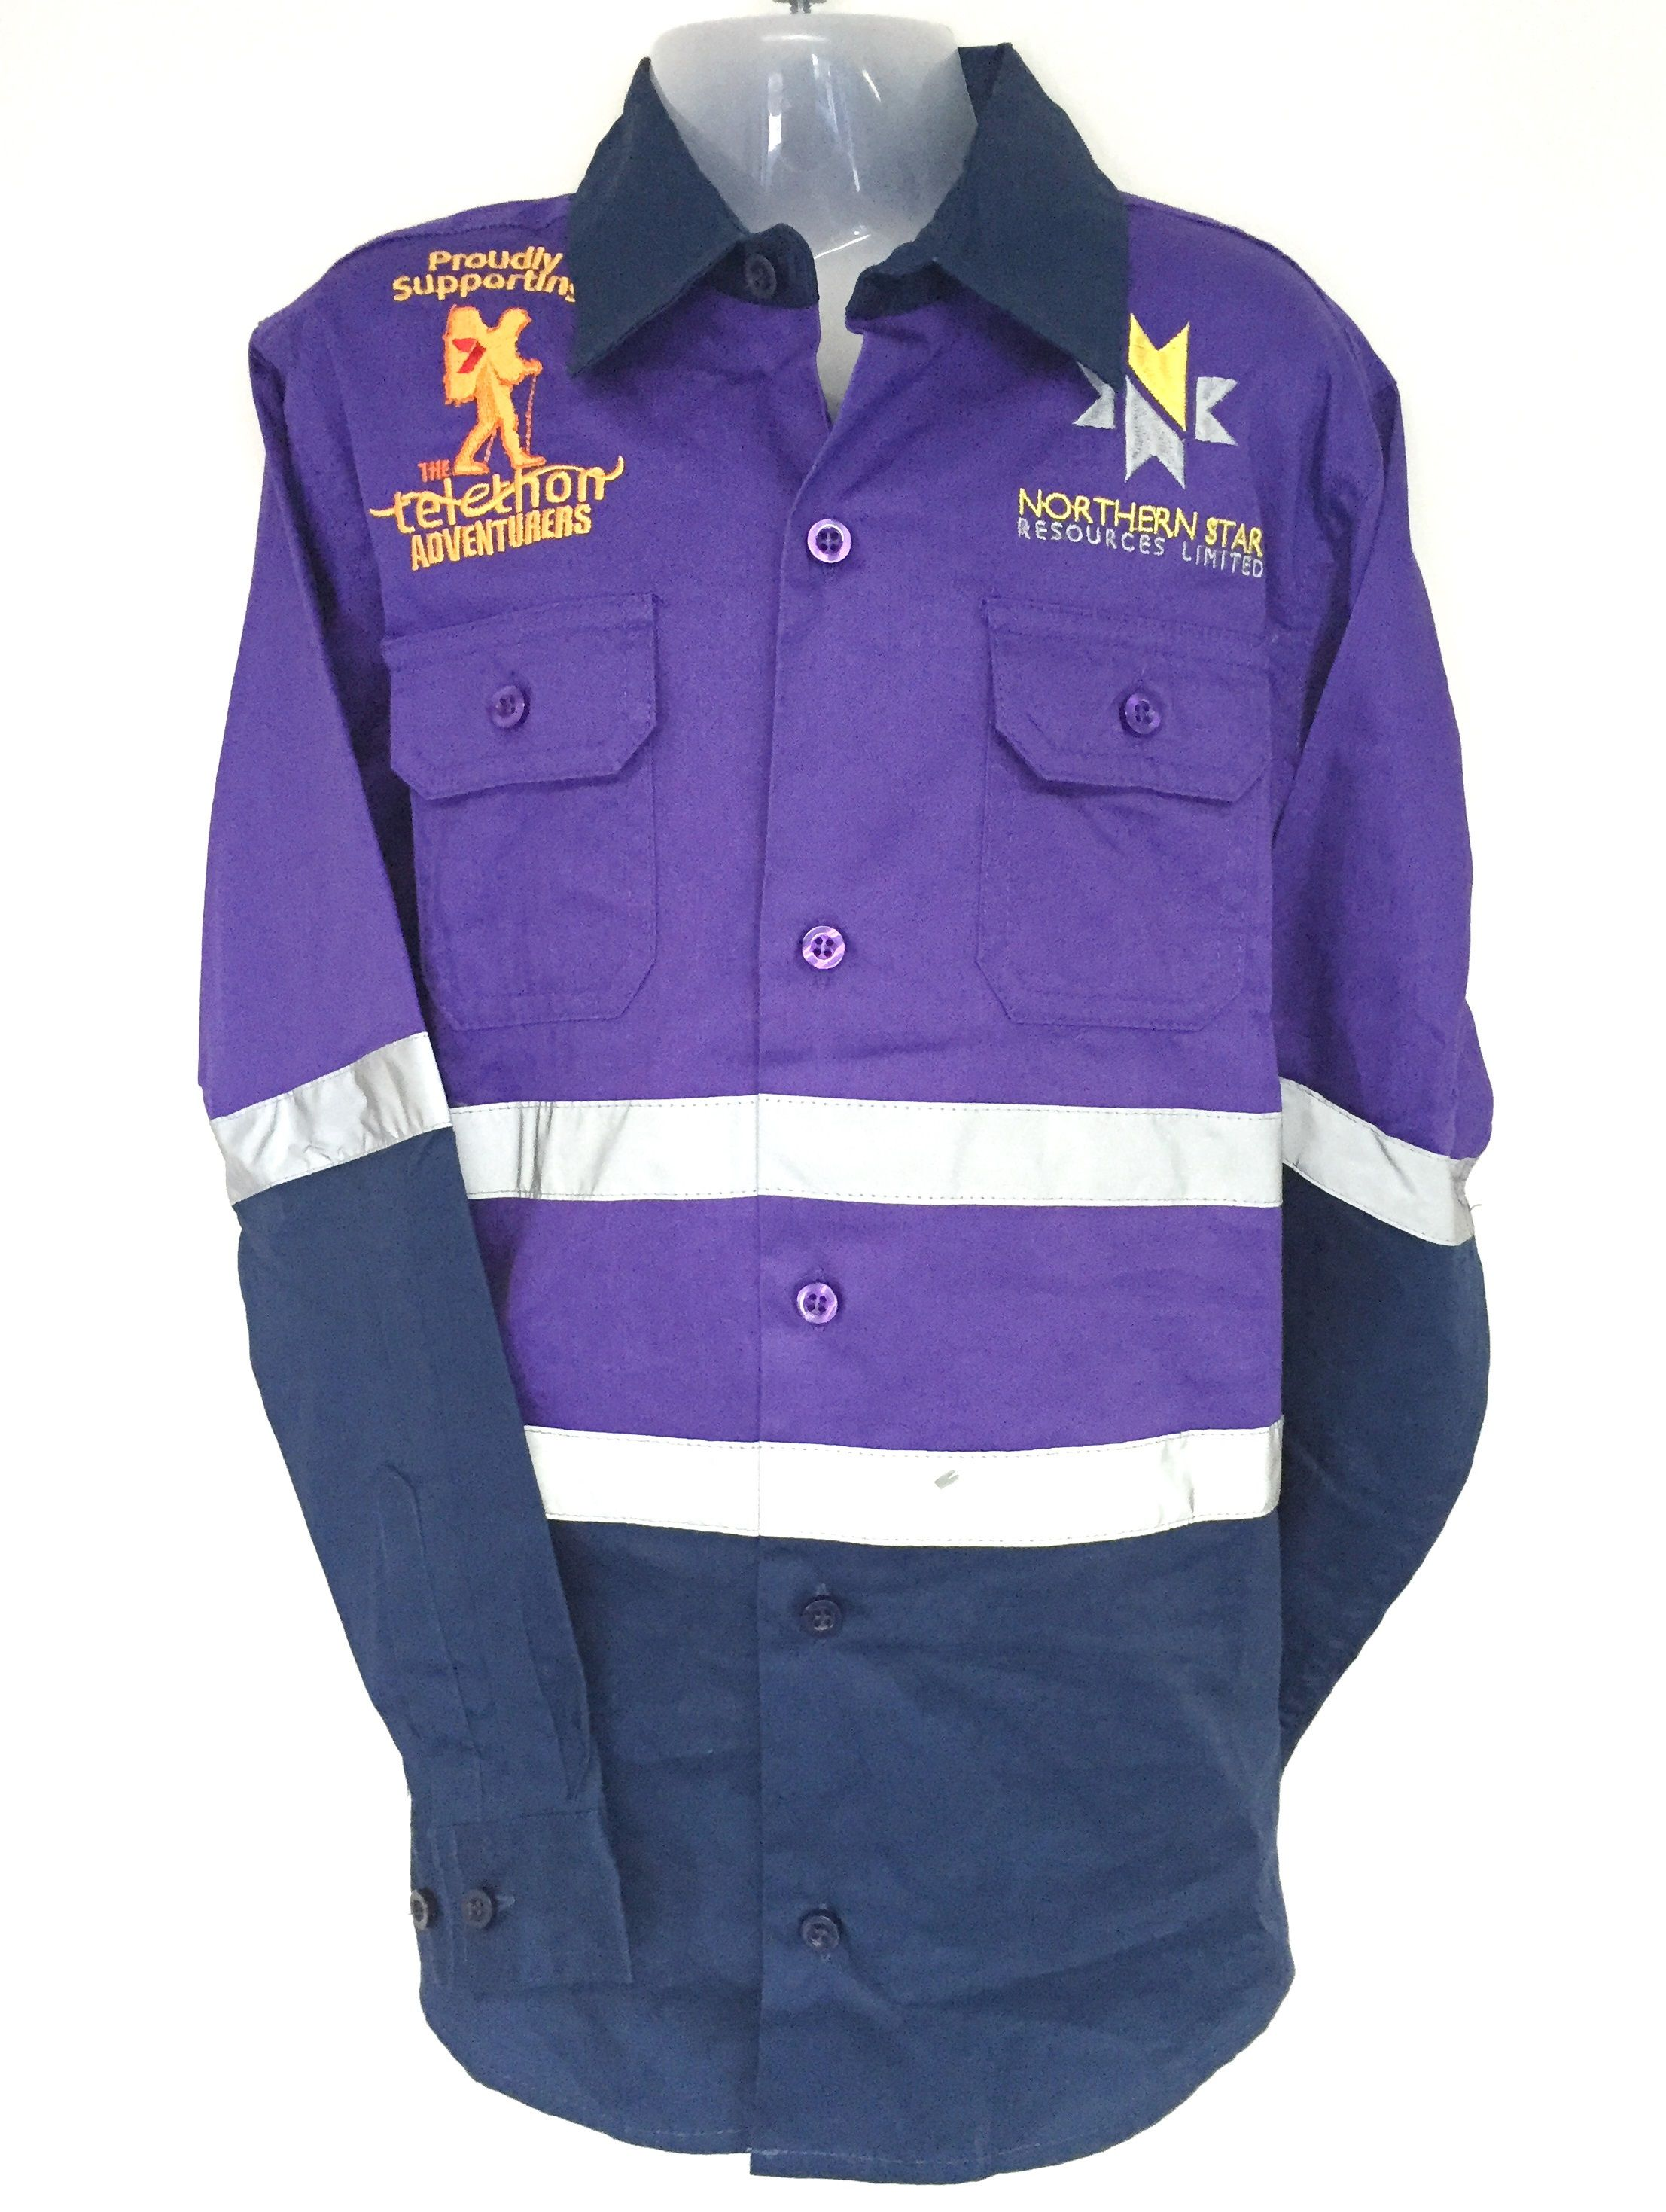 Polo shirt design your own - Check Out How Cute Our Youth Size Purple Navy Hi Vis Cotton Drill Shirt Designed